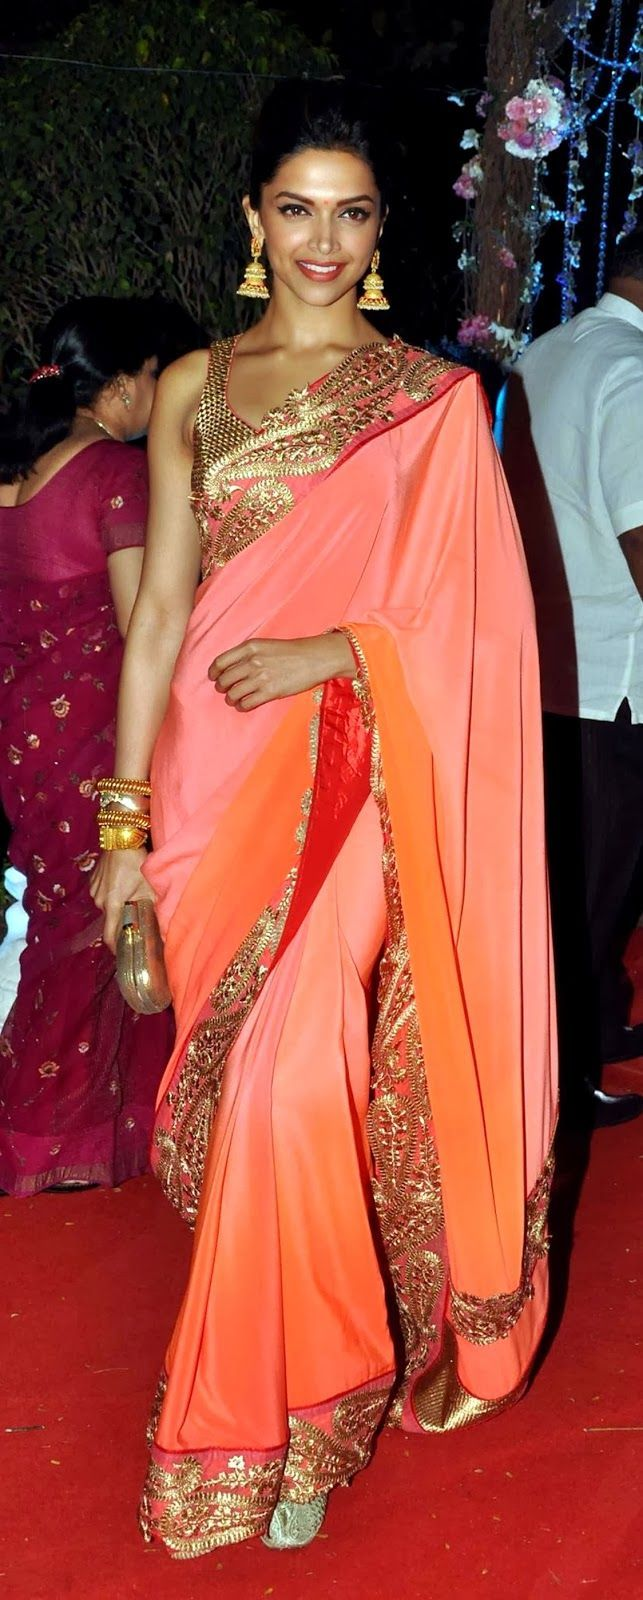 Deepika Padukone in Jade by Monica & Karishma A lovely ombre orange and pink saree with gold embellishments. It's the perfect saree for guests attending an evening wedding function. Beautifully paired with jhumka earrings by Amrapali. Indian designer - Indian couture #thecrimsonbride